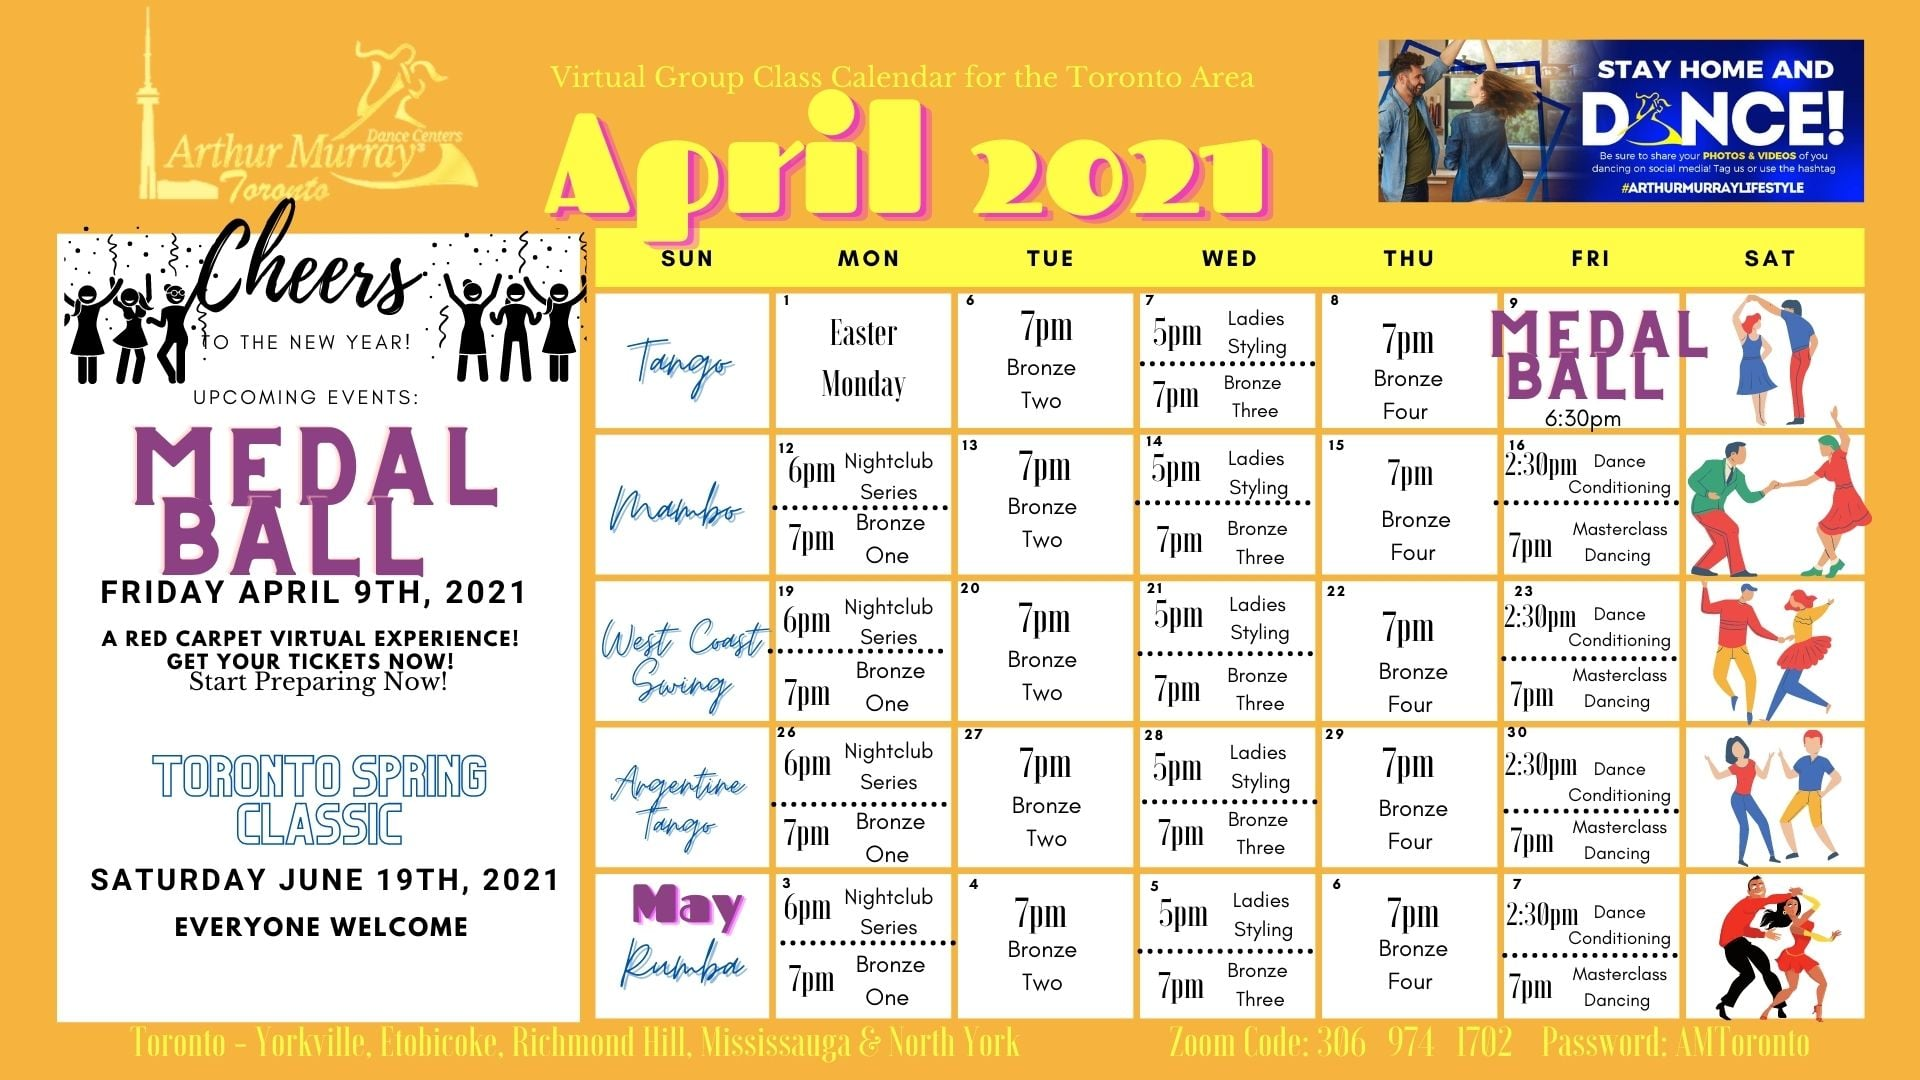 Dance class calendar and schedule for the month of April 2021 at Arthur Murray Dance Studio North York